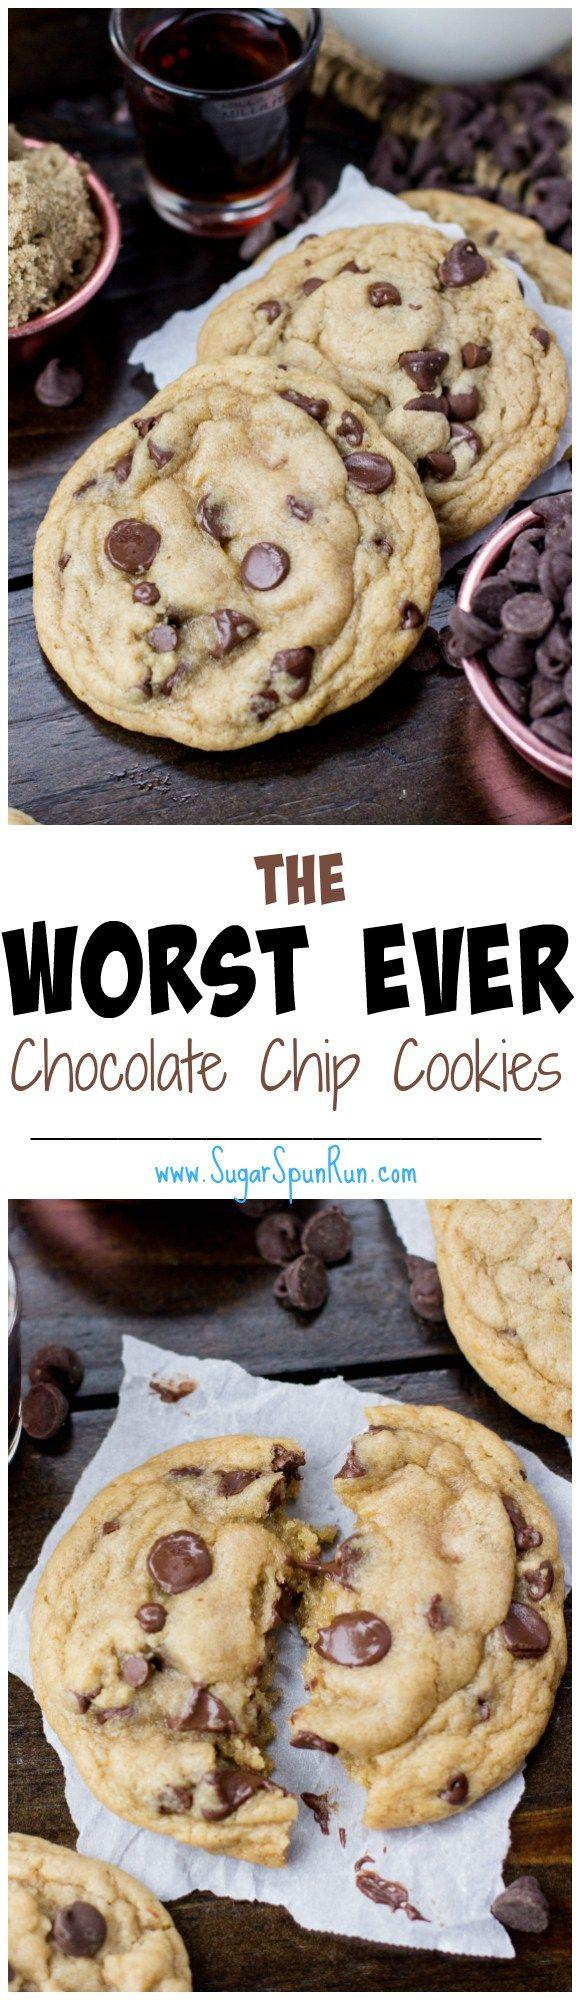 Mariage - The WORST EVER Chocolate Chip Cookies